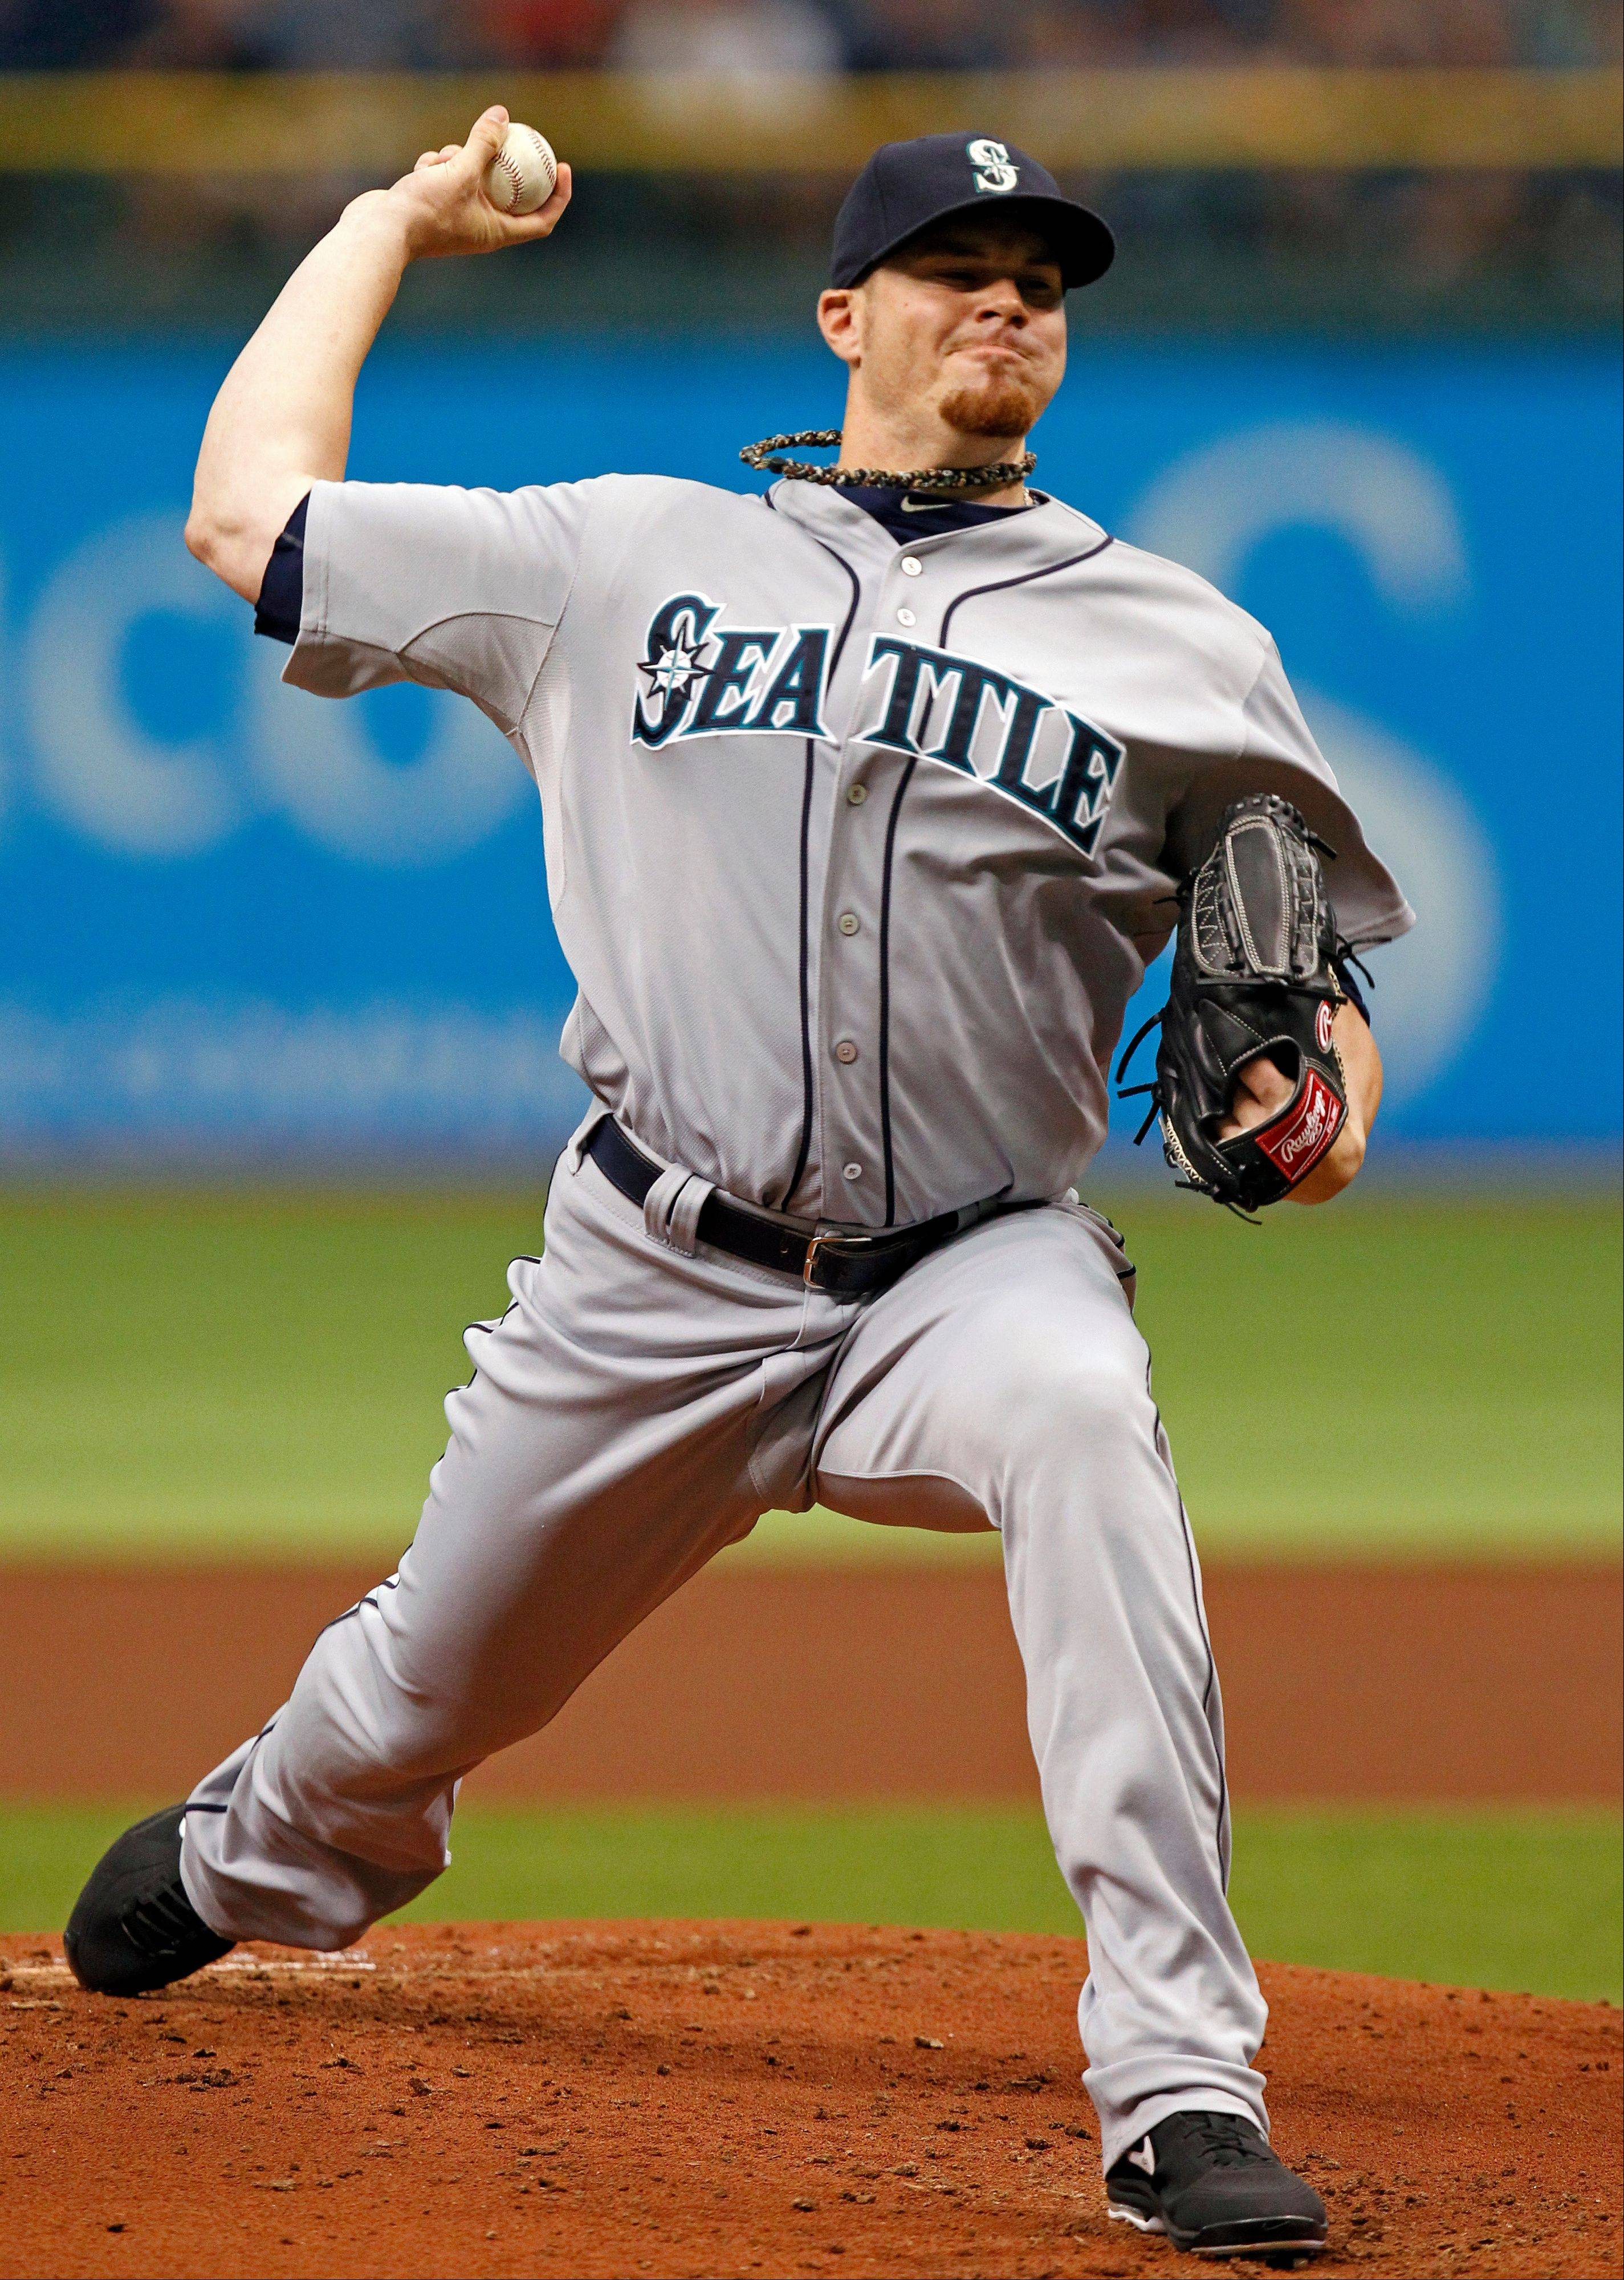 Seattle Mariners starting pitcher Blake Beavan struck out five and walked none Sunday in a road win over the Tampa Bay Rays.